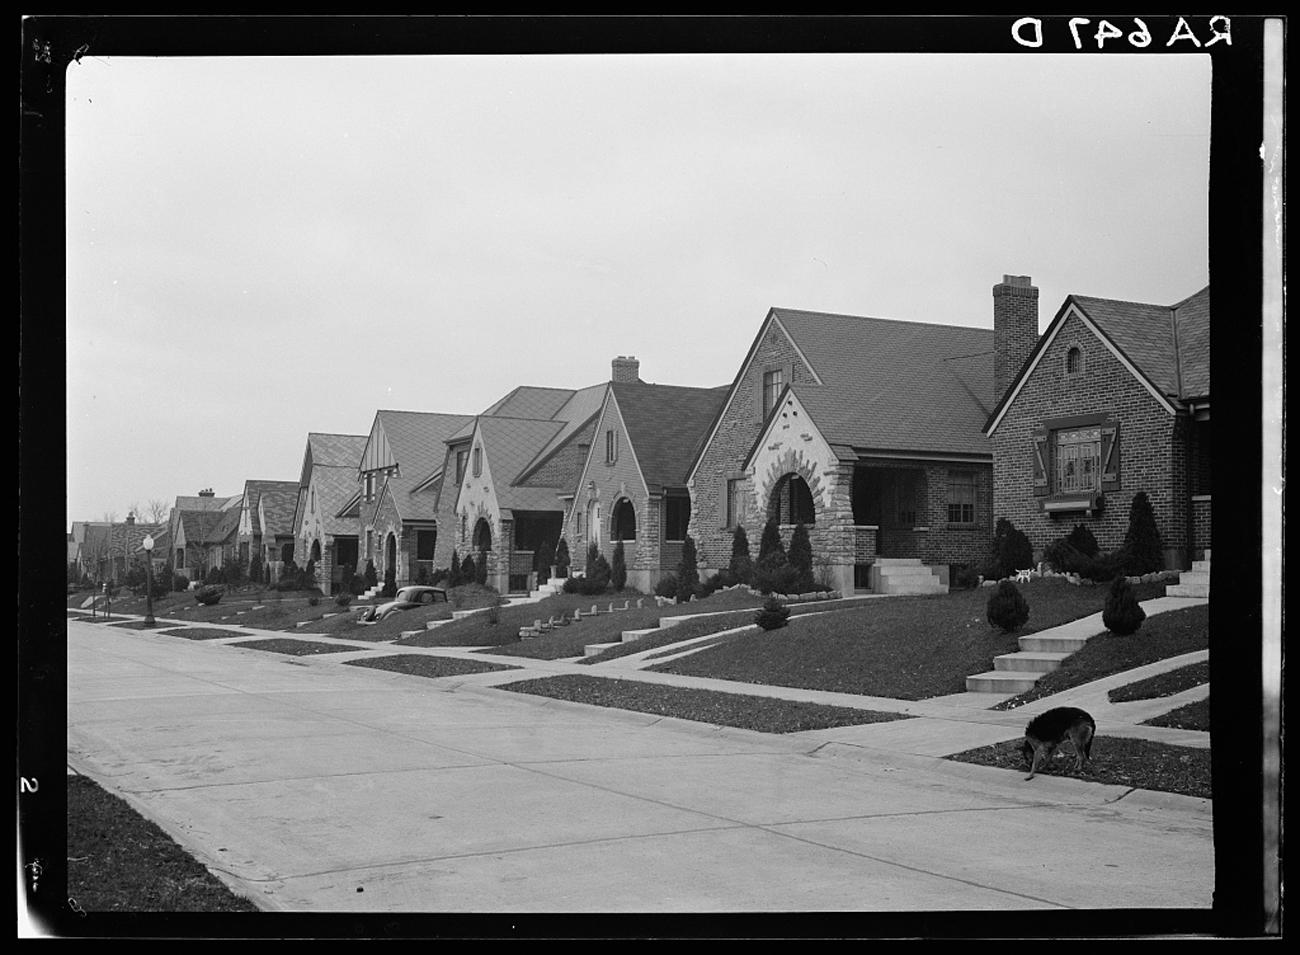 """House on Laconia Street in a suburb of Cincinnati, Ohio"" in December 1935{ }/ Image: Carl Mydans for the U.S. Farm Security Administration/Office of War Information accessed via the Library of Congress // Published: 3.4.19"